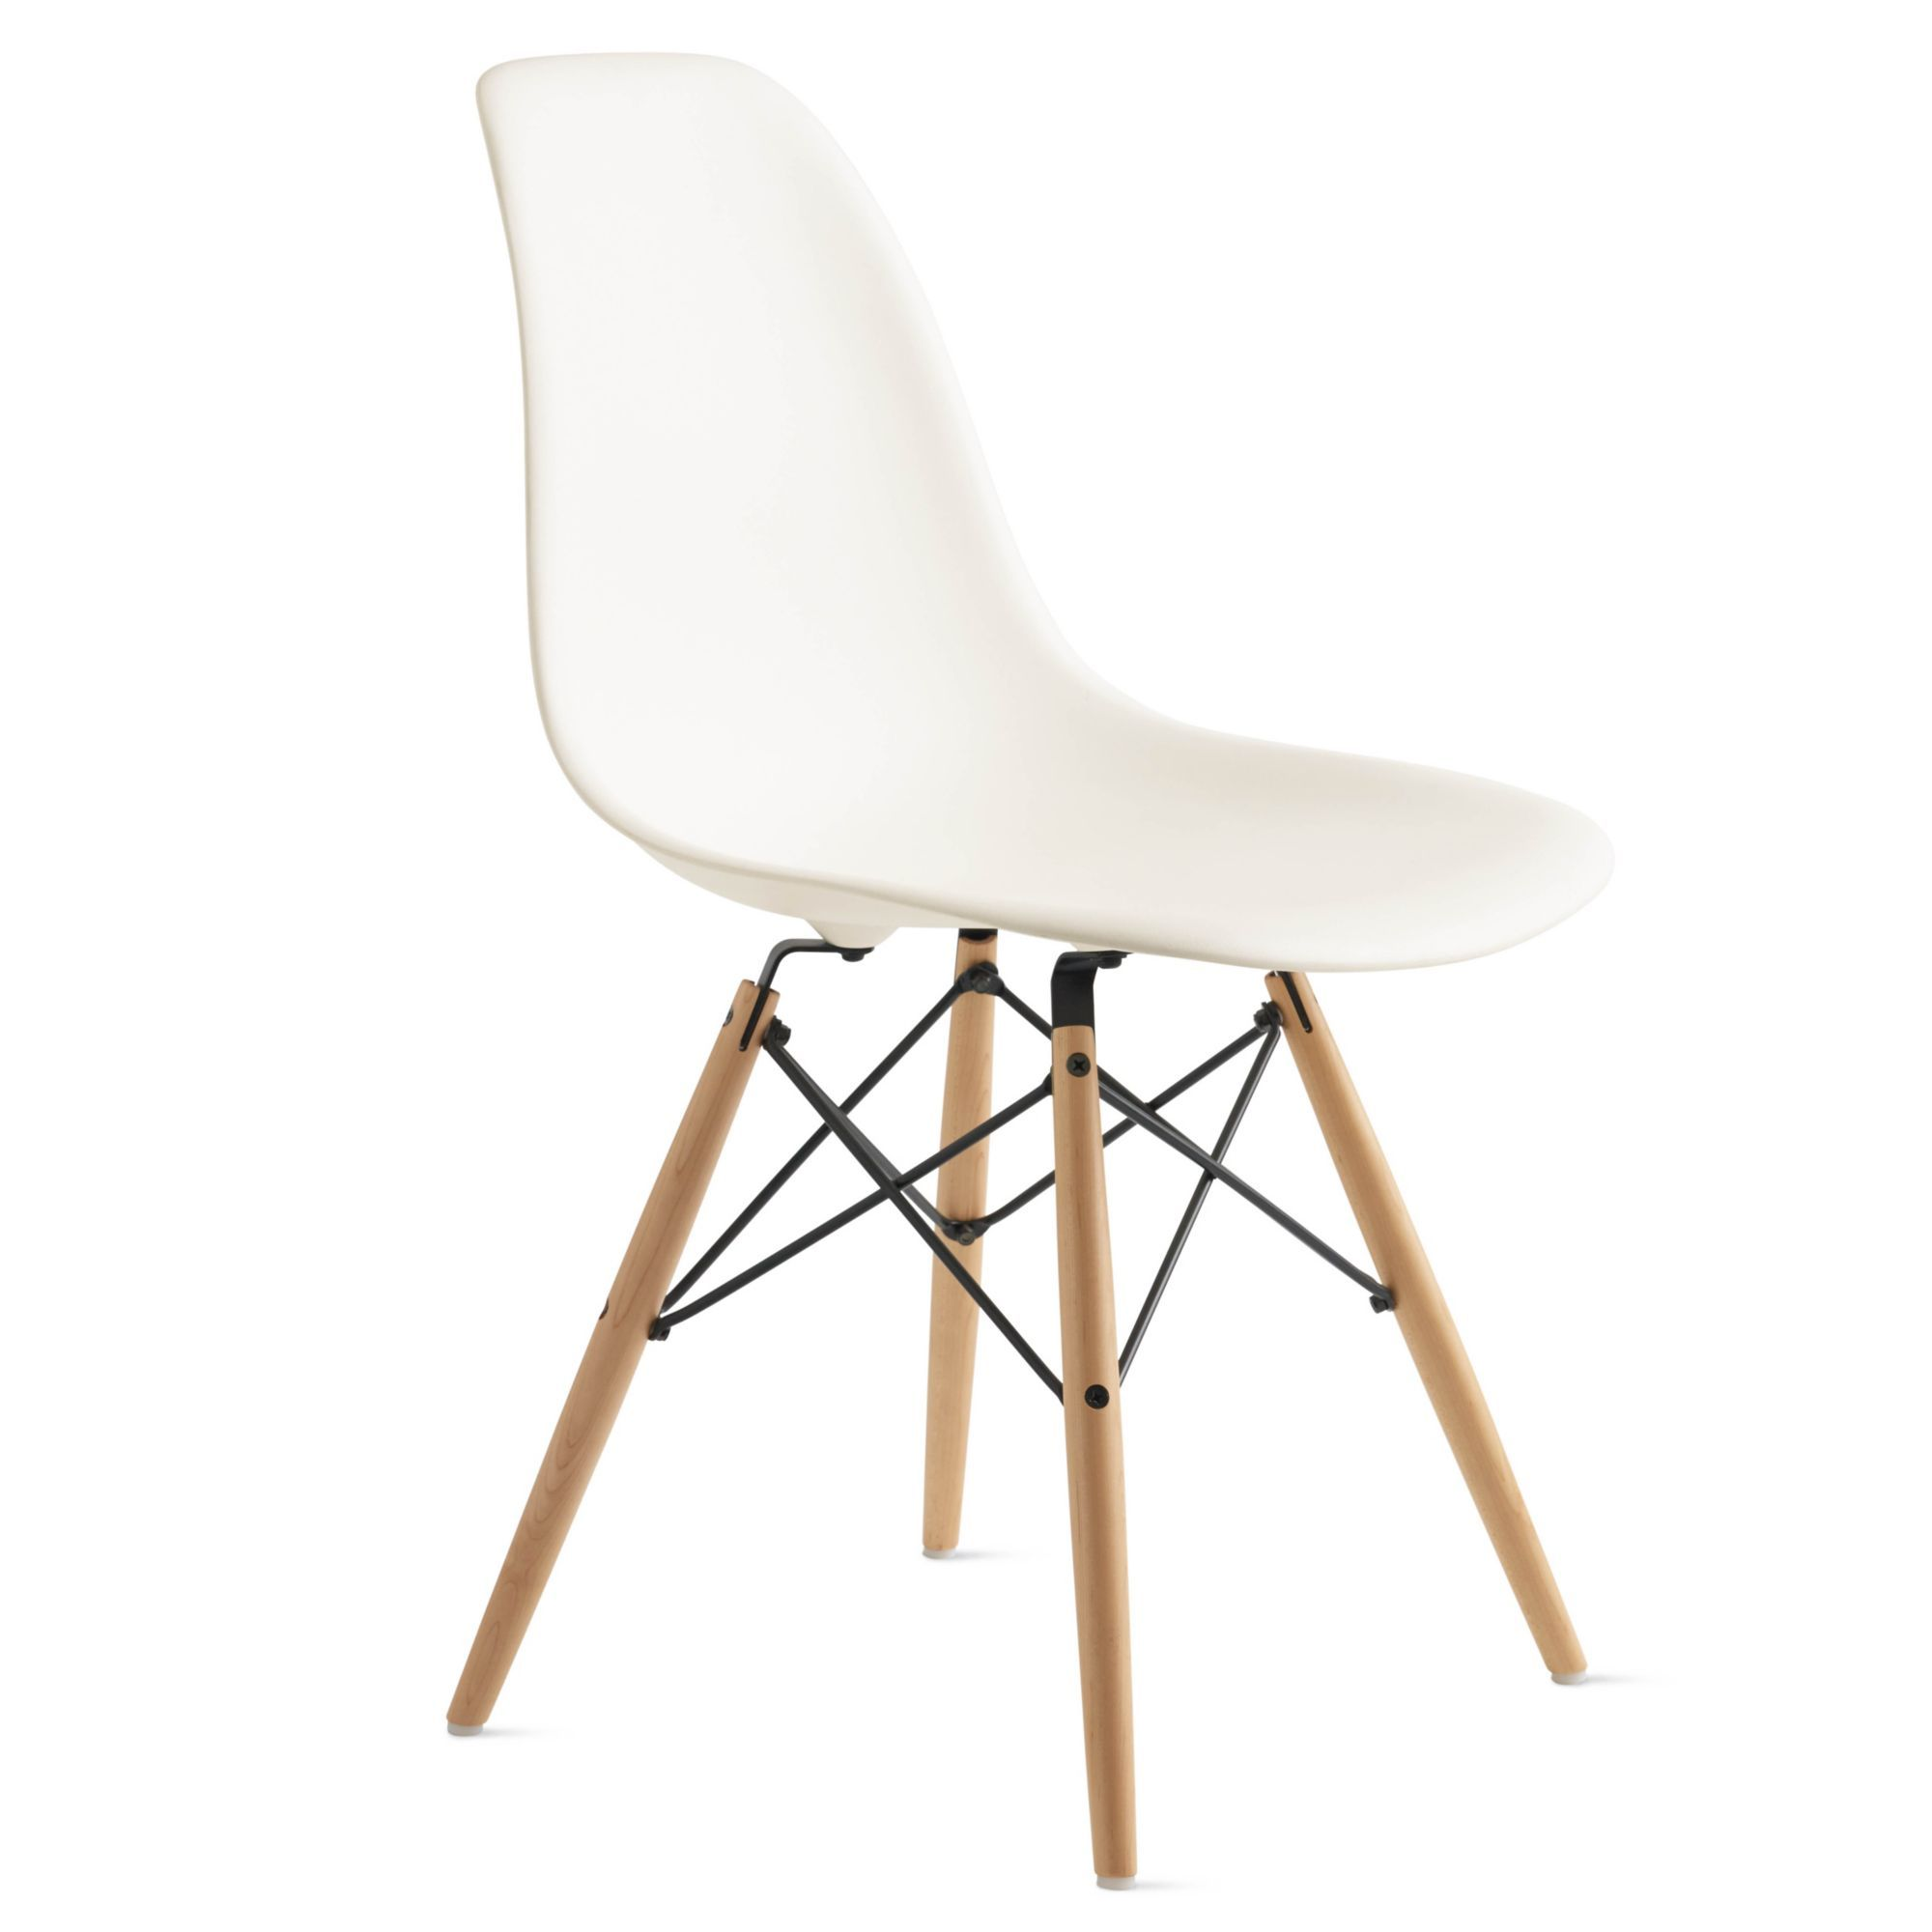 Eames Molded Plastic Dowel Leg Side Chair Dsw With Images Eames Molded Plastic Side Chair Side Chairs Dining Chair Slipcovers